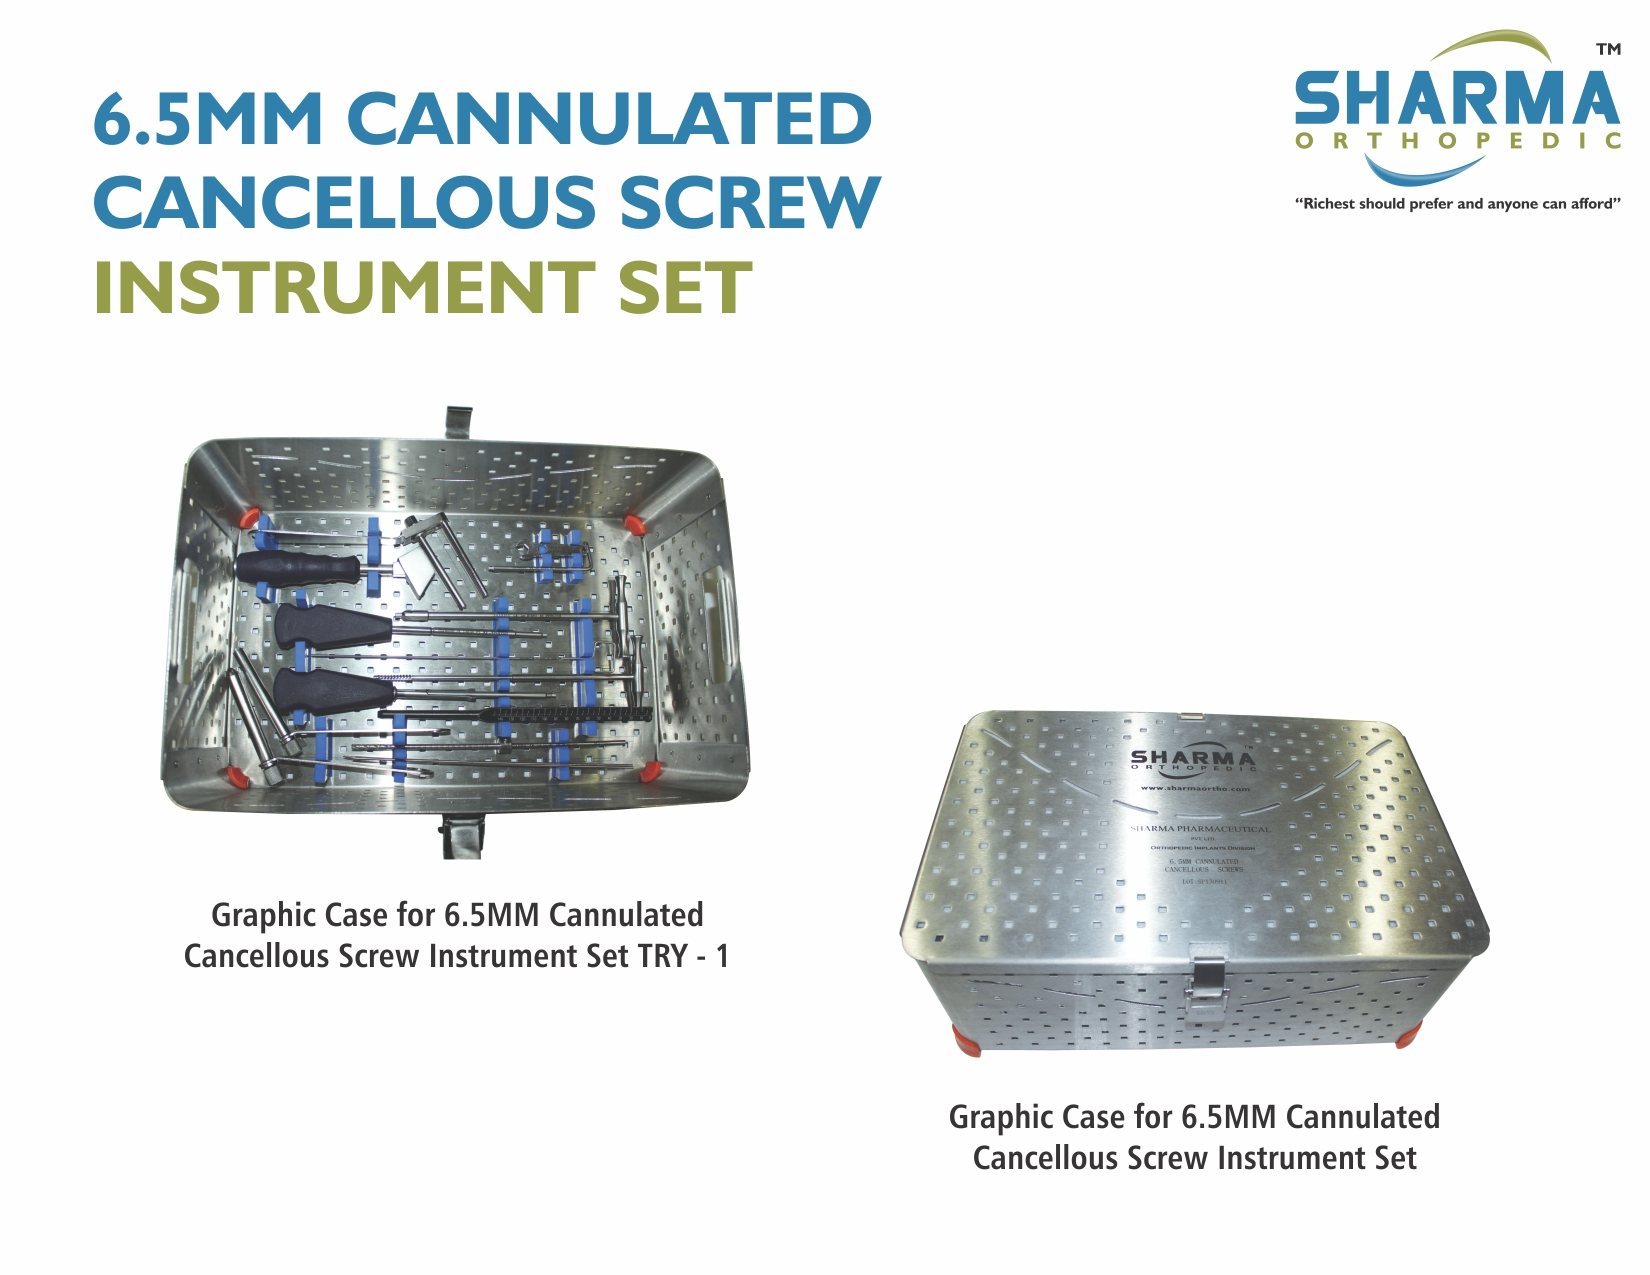 6.5MM CANNULATED CANCELLOUS SCREW INSTRUMENT SET